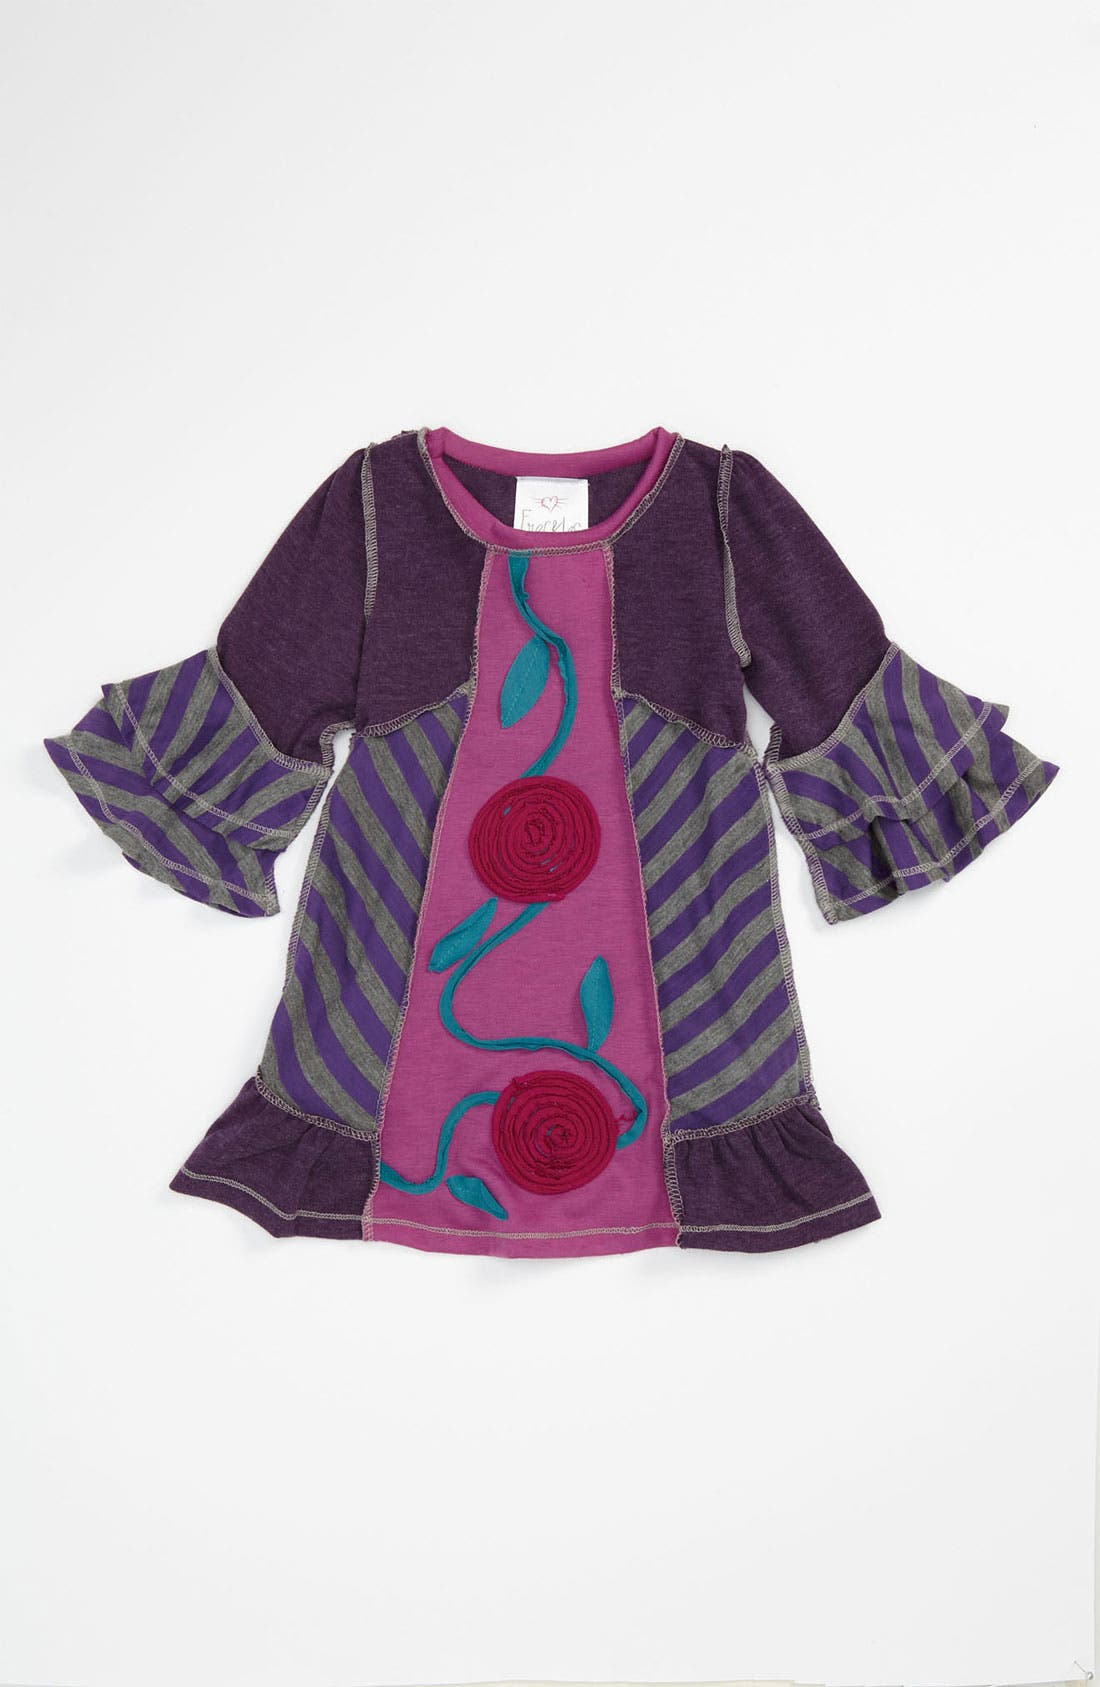 Alternate Image 1 Selected - Freckles & Kitty Patchwork Dress (Toddler)